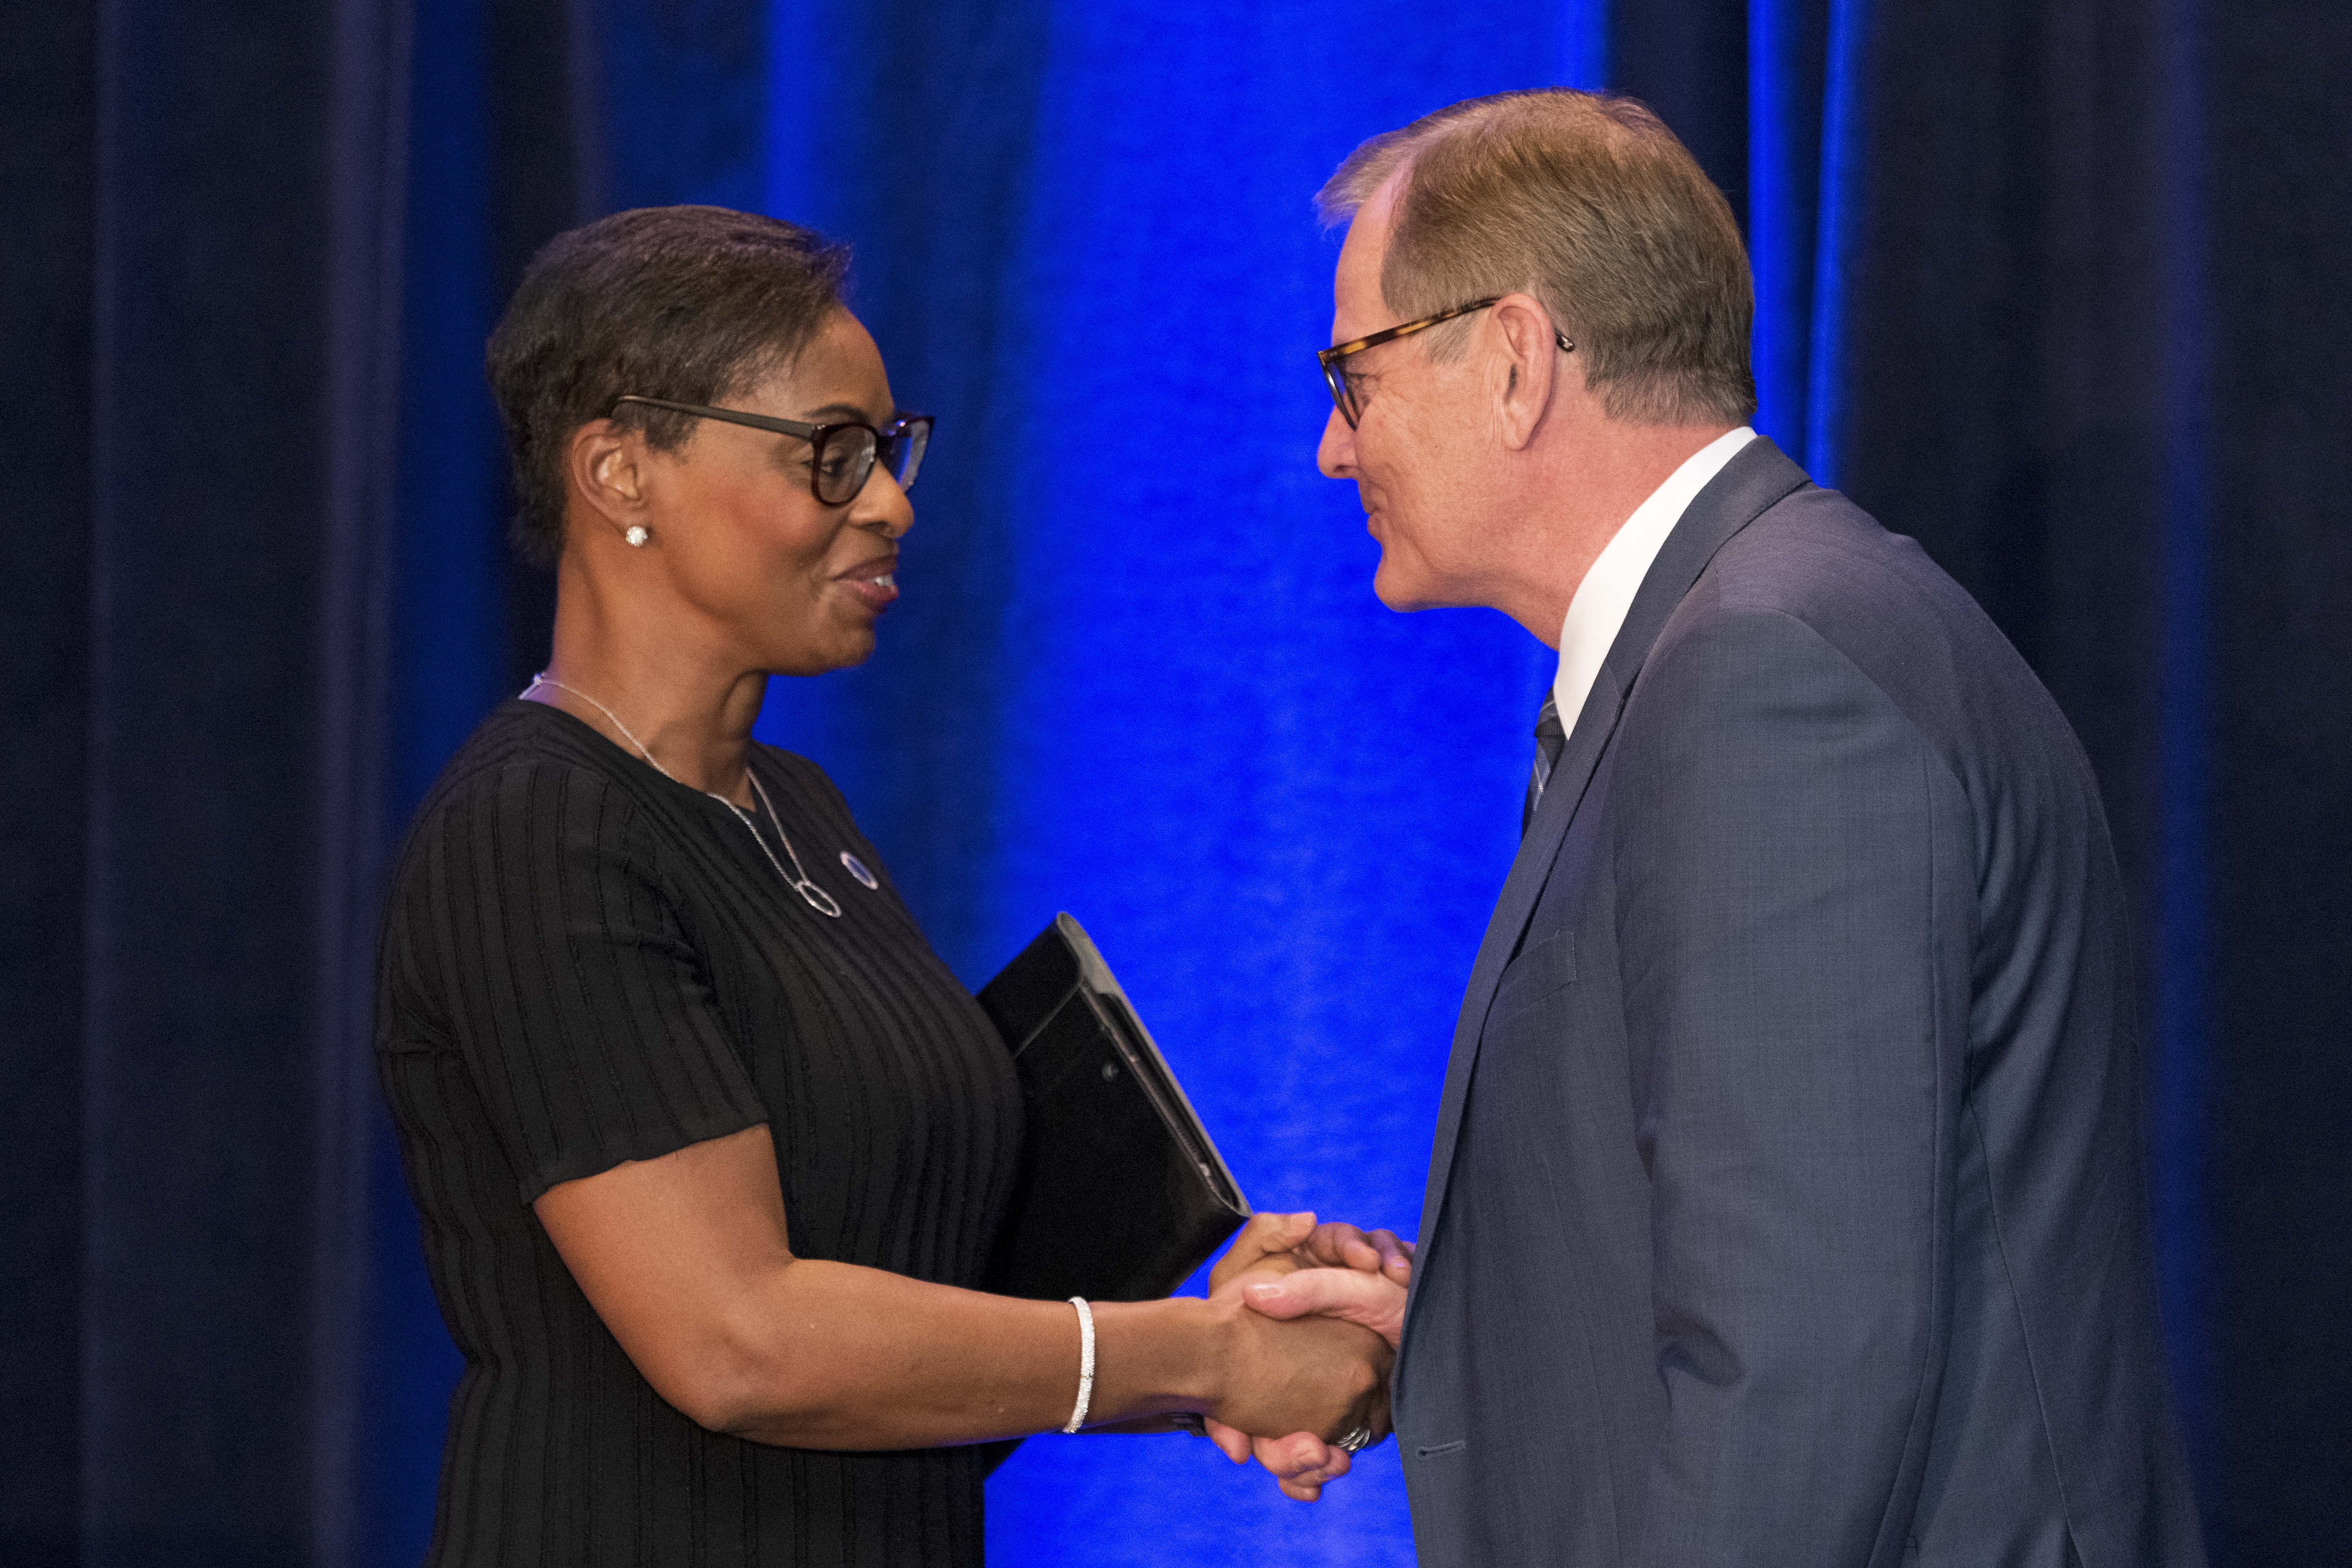 Elder Gary E. Stevenson congratulates Karen Boykin-Towns, NAACP vice chair, on receiving the award from the BYU Management Society event on May 11, 2019.